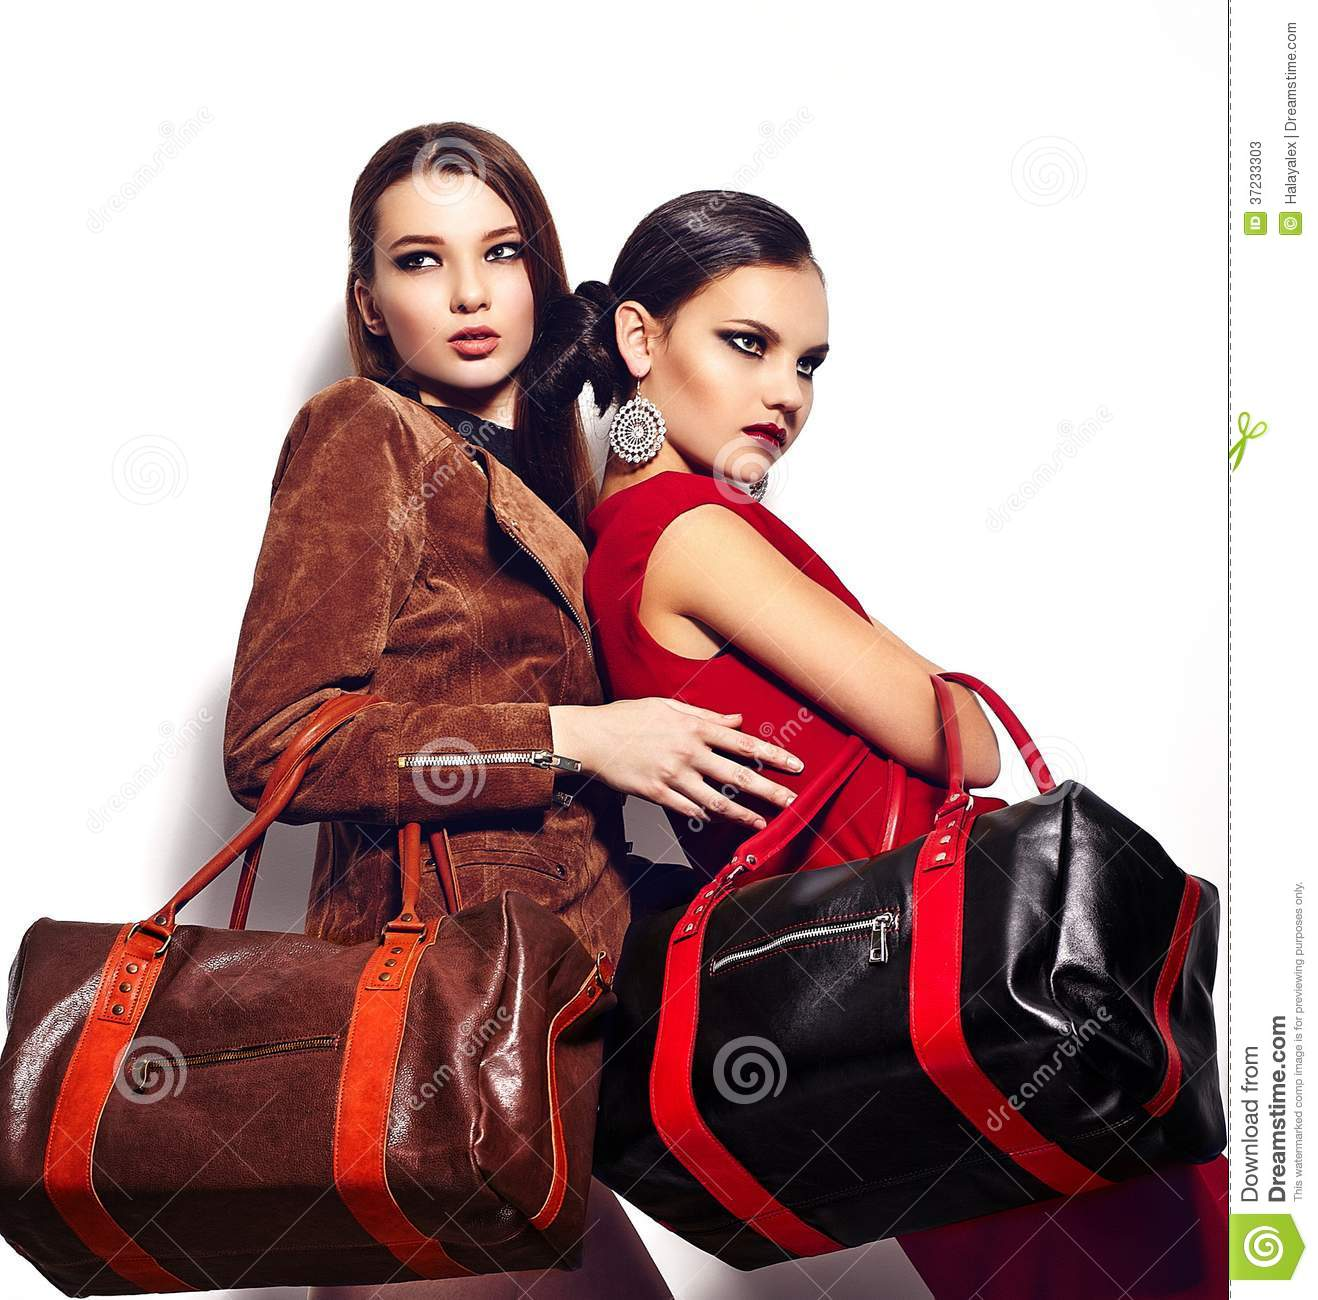 Glamor closeup portrait of two beautiful stylish brunettes Caucasian young women models with bright makeup, with red lips,